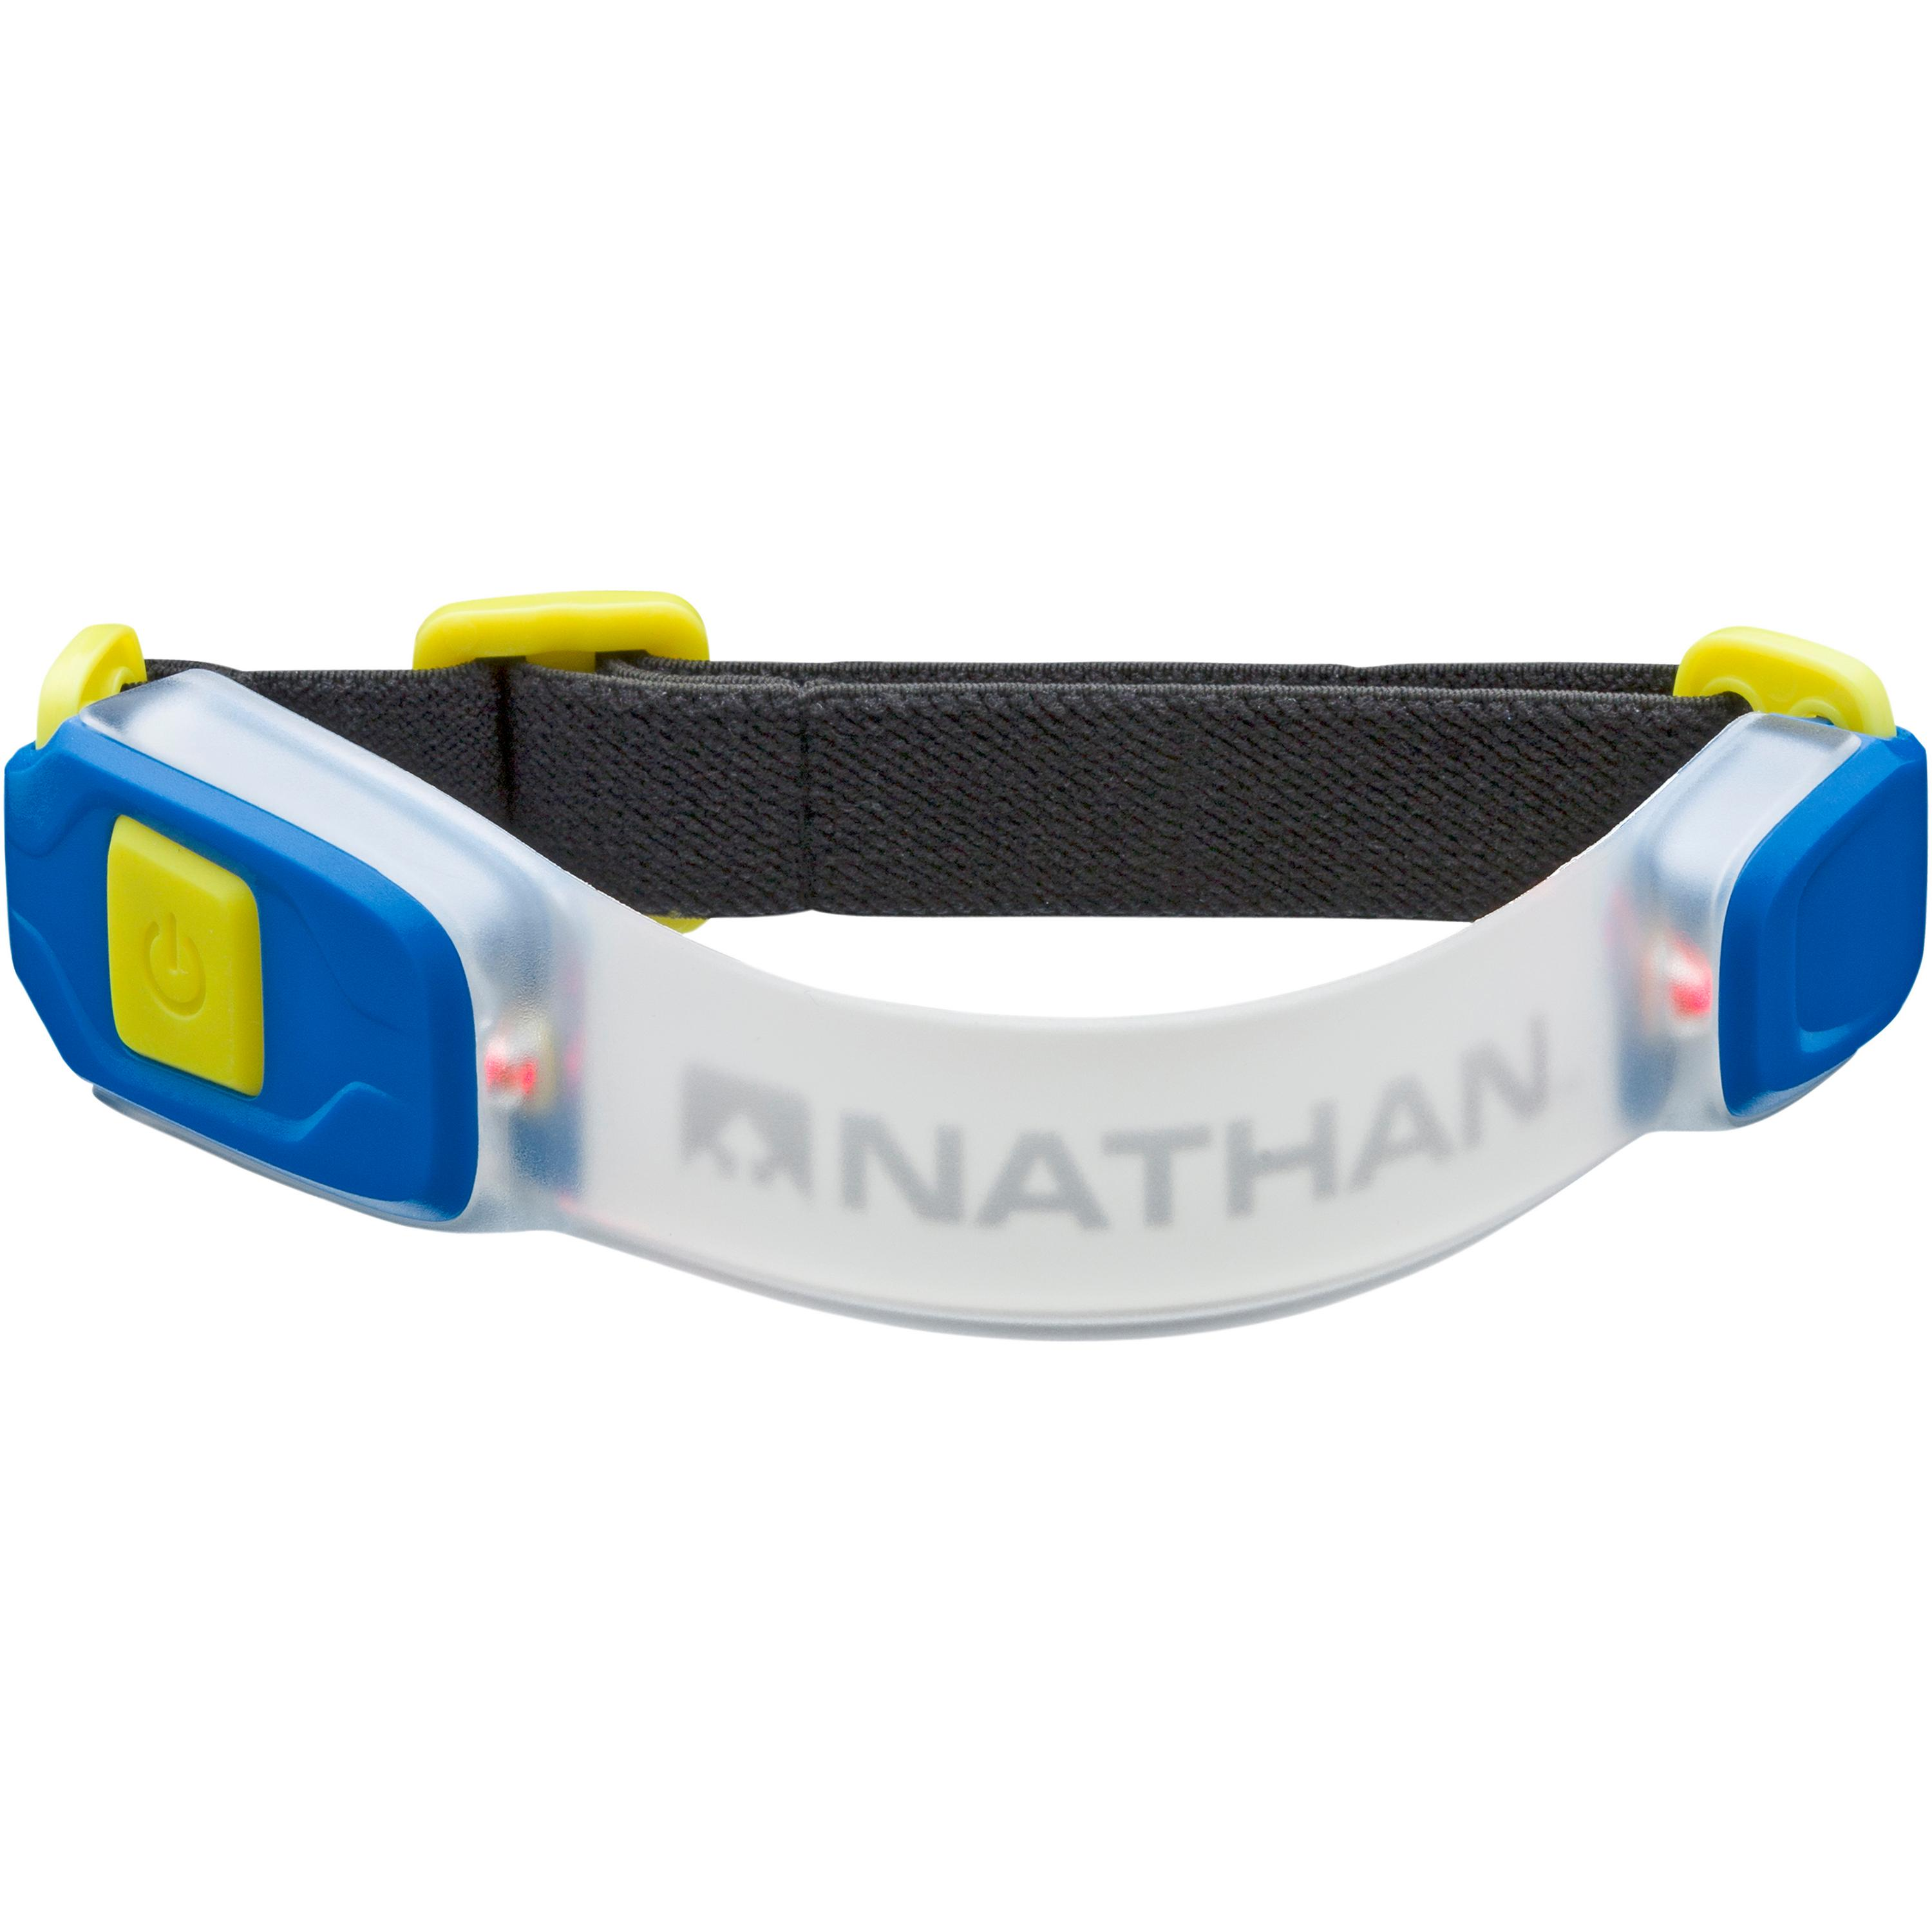 NATHAN LightBender RX Stirnlampe LED